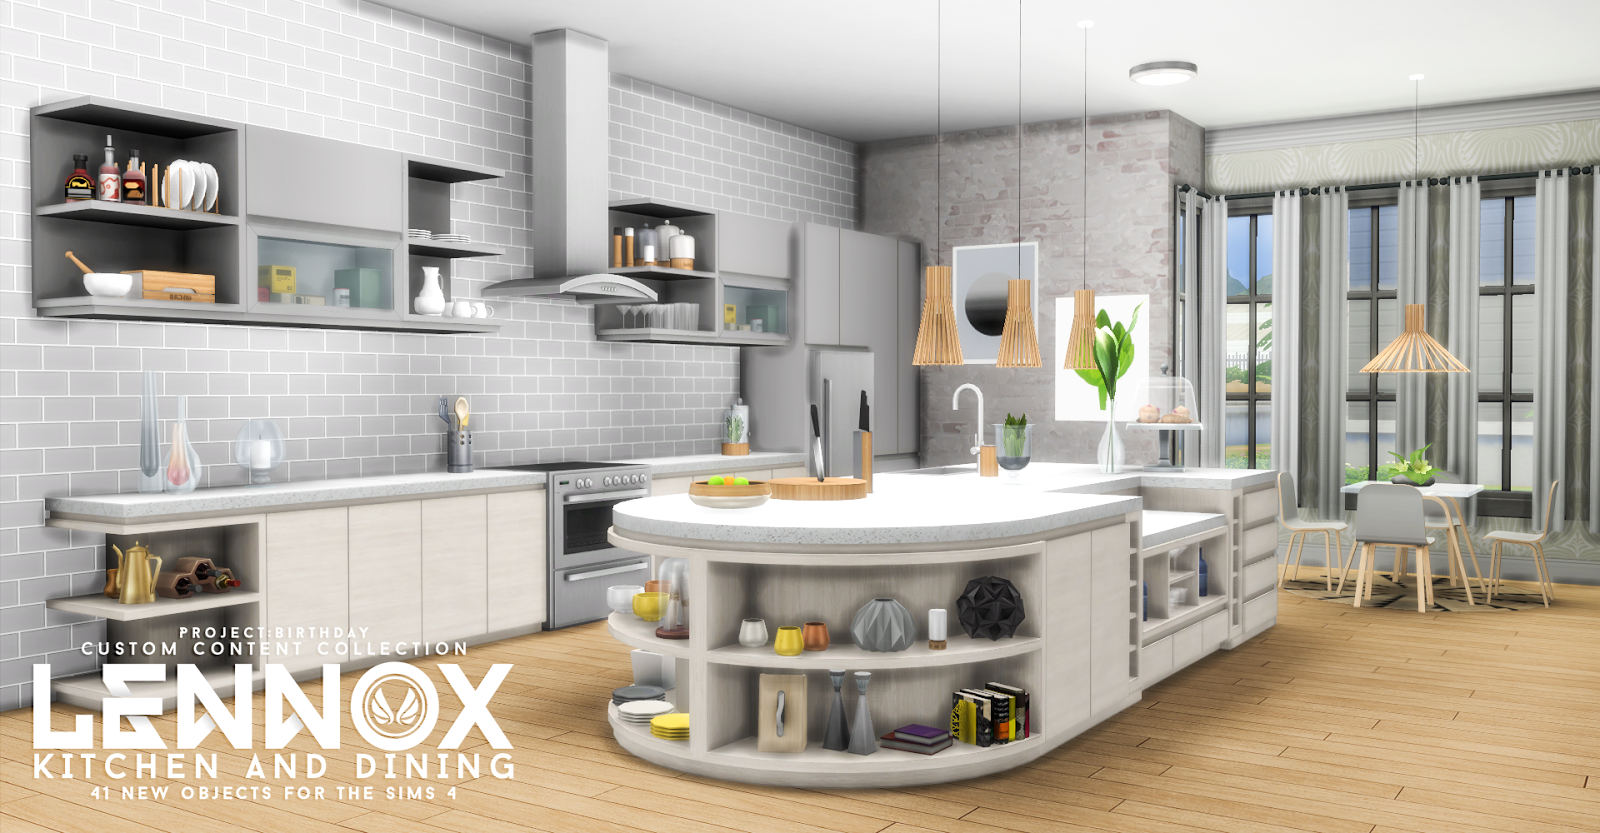 Simsational Designs: UPDATED: Lennox Kitchen And Dining Set